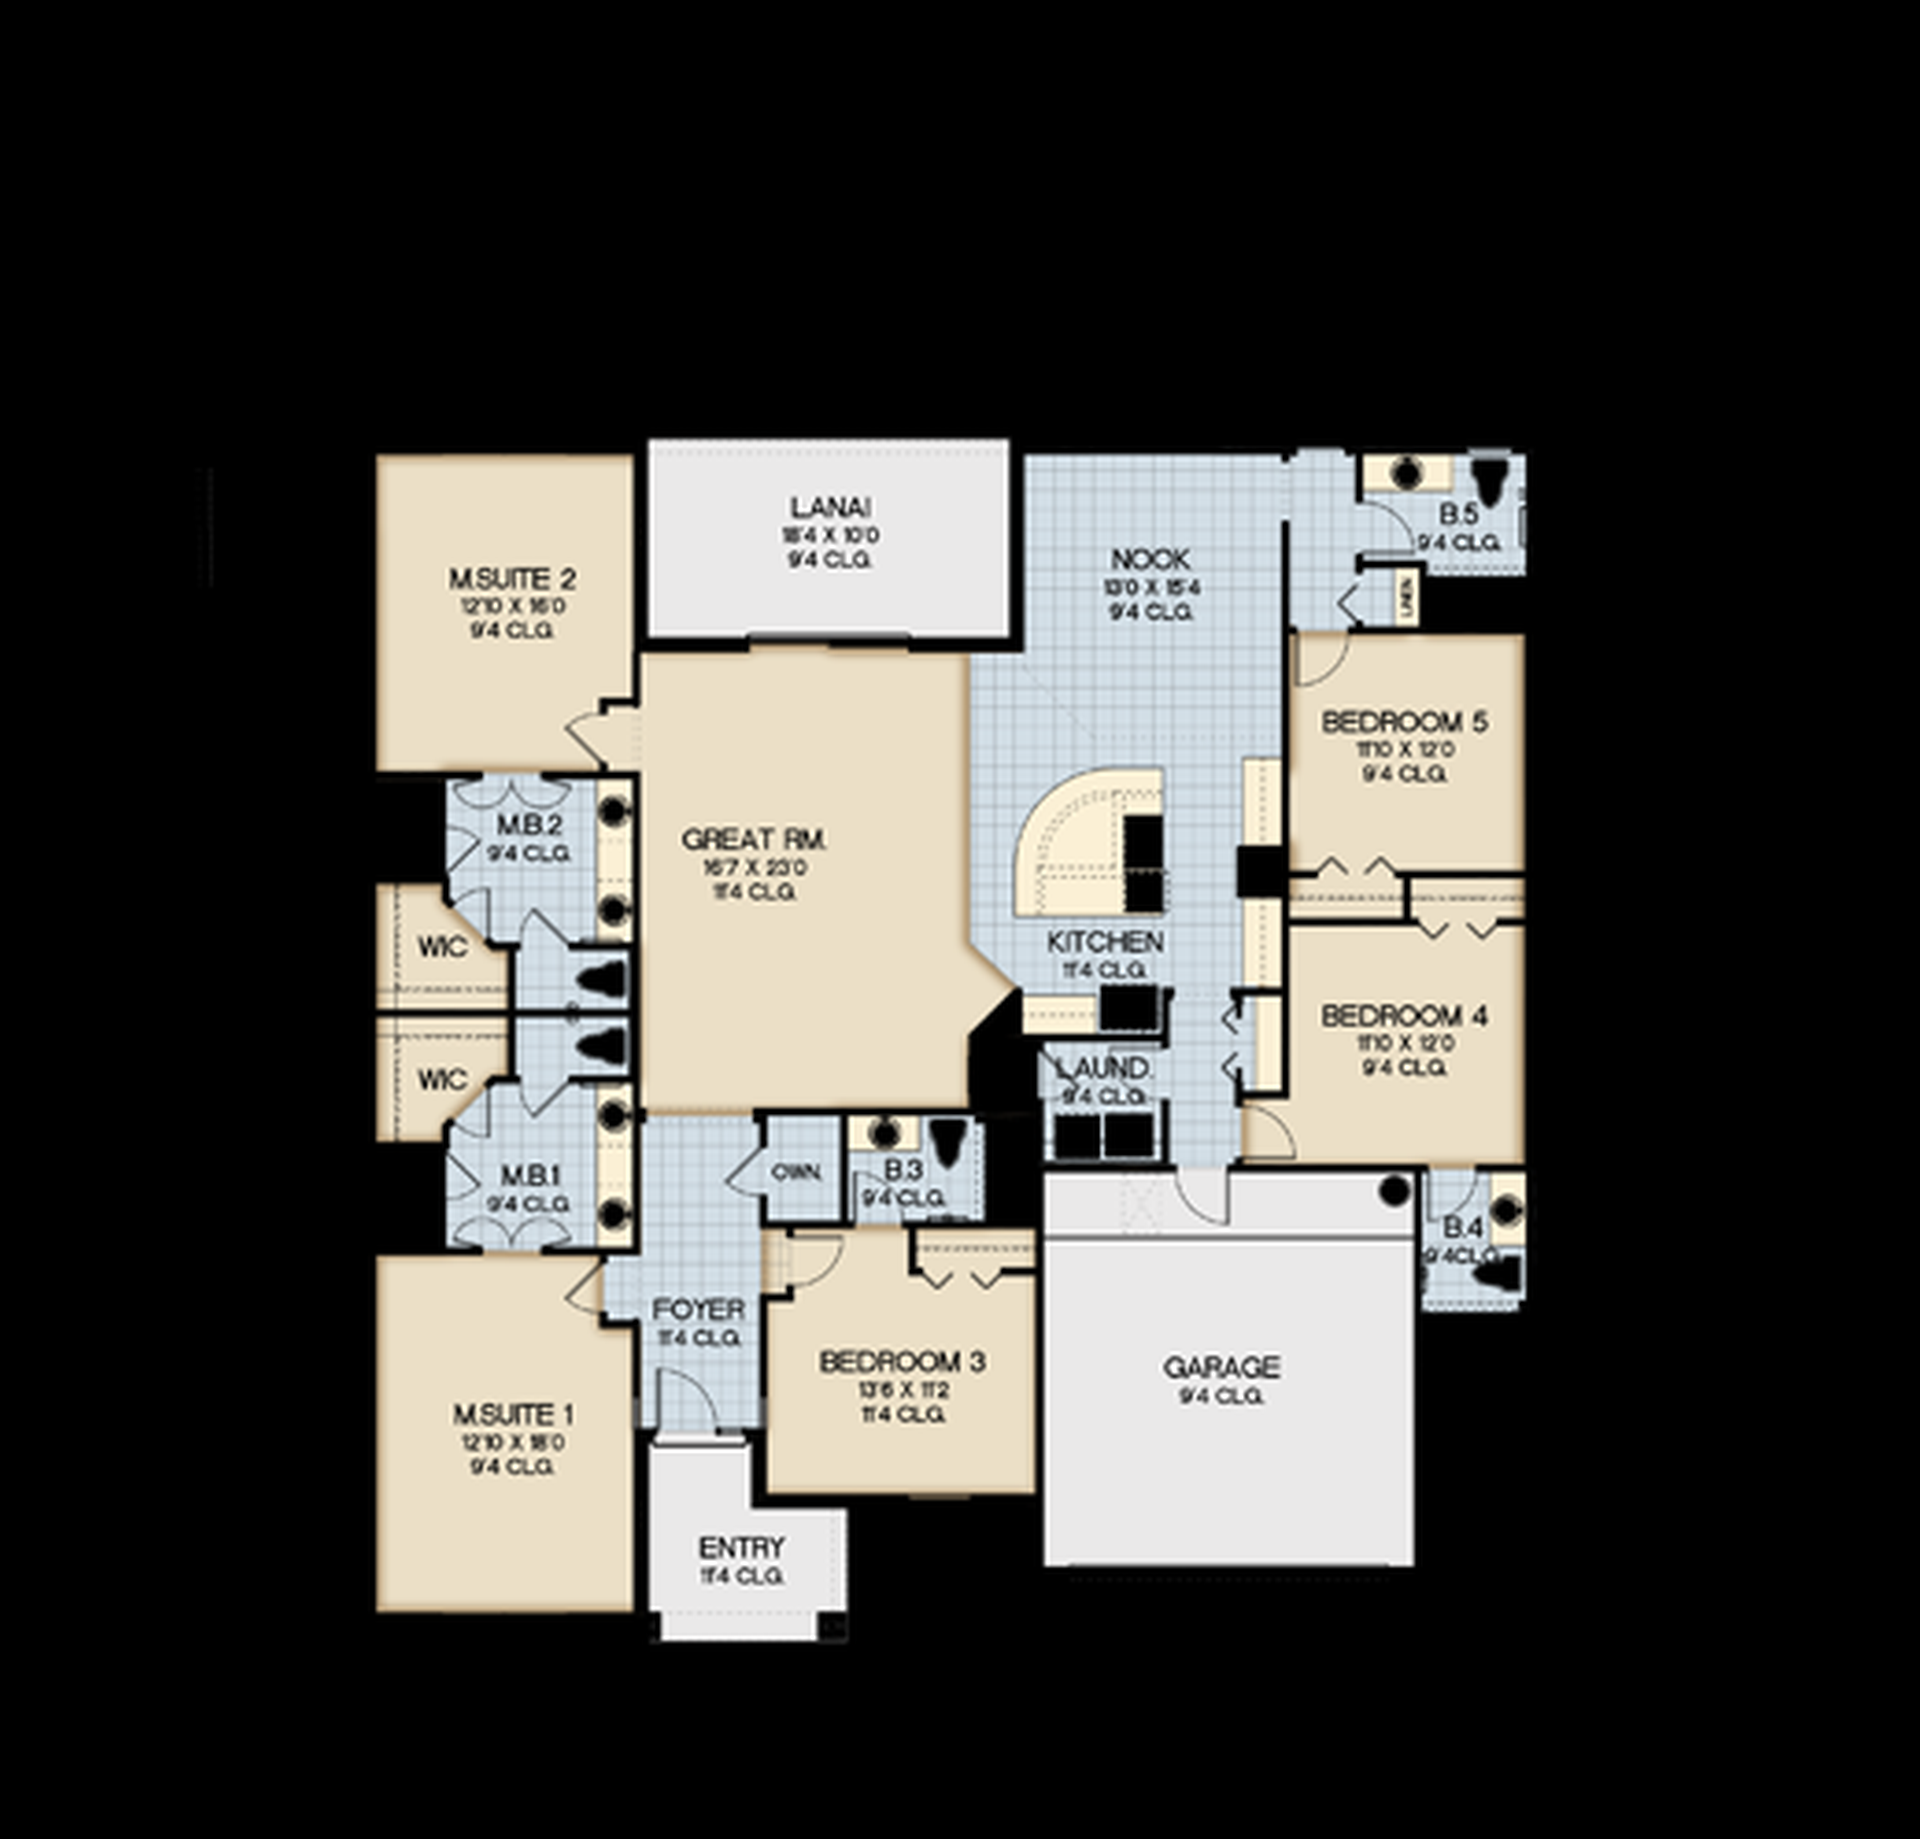 Merzano Floor Plan